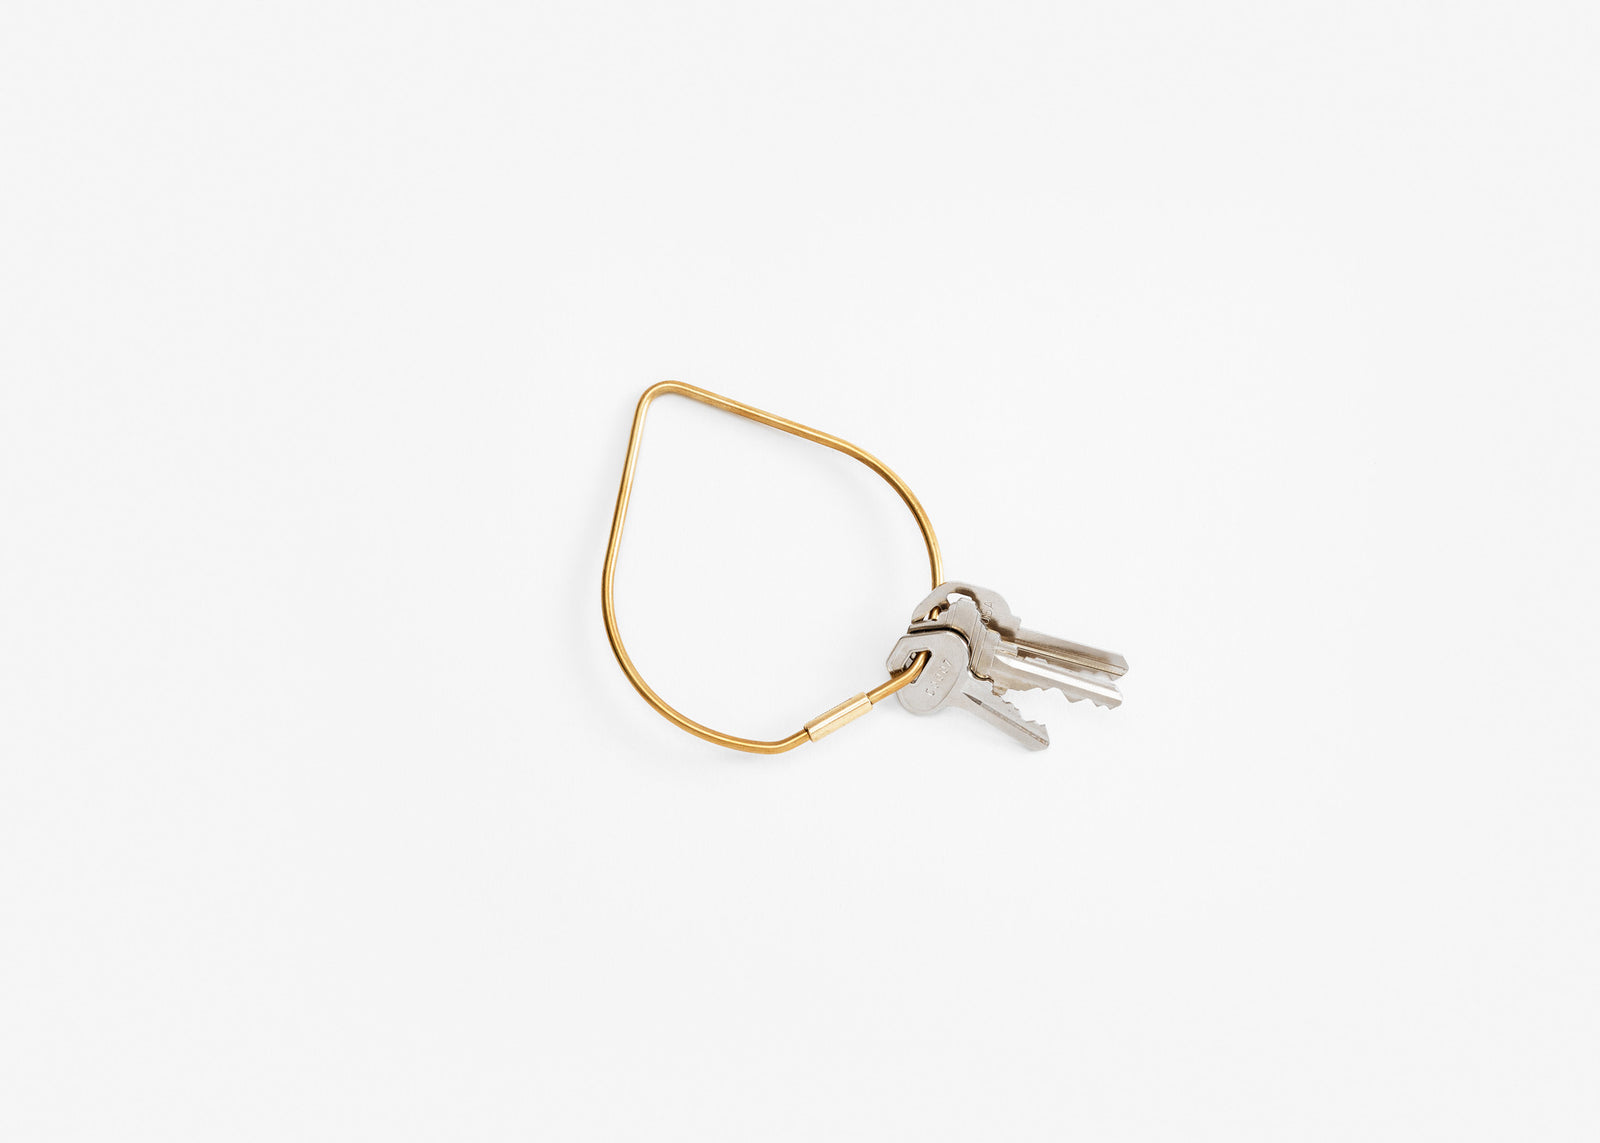 Contour Key Ring - Brass/Drop